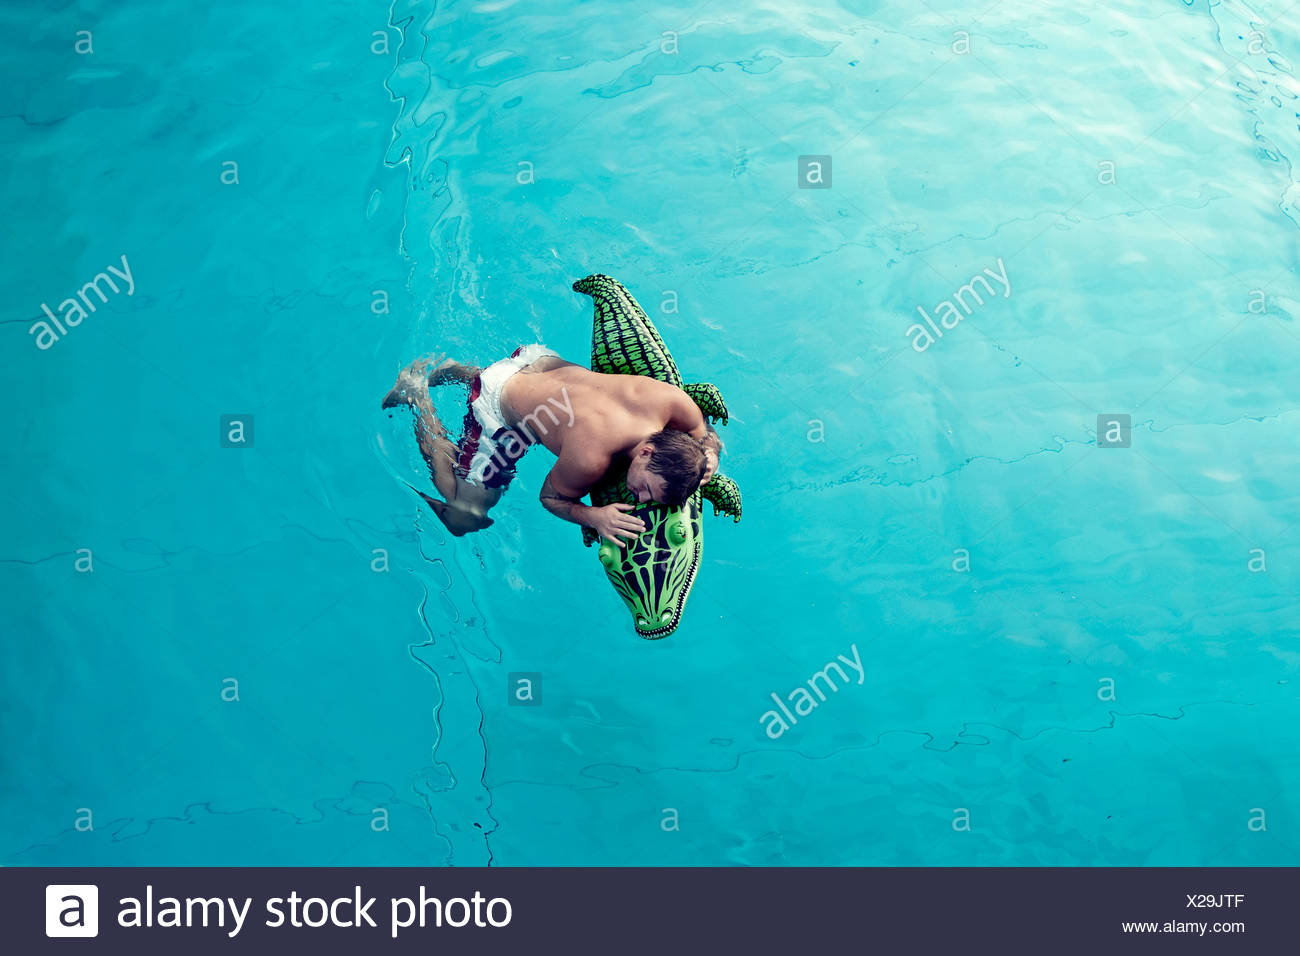 Young man with swim toy floating in water, view from above - Stock Image